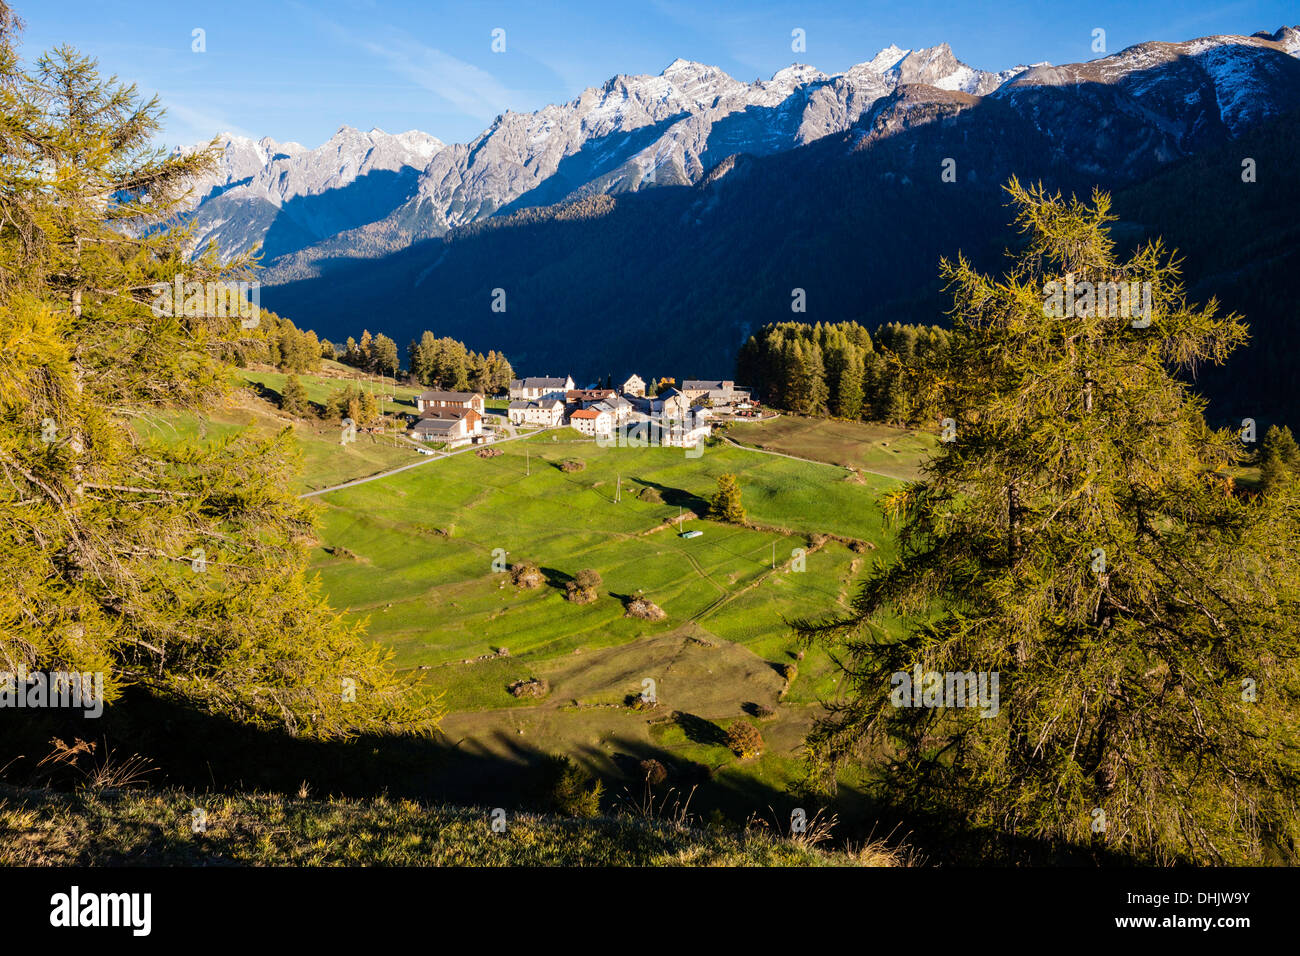 Little village Bos-cha at Engadin, Canton of Graubuenden, Grisons, Switzerland, Europe - Stock Image